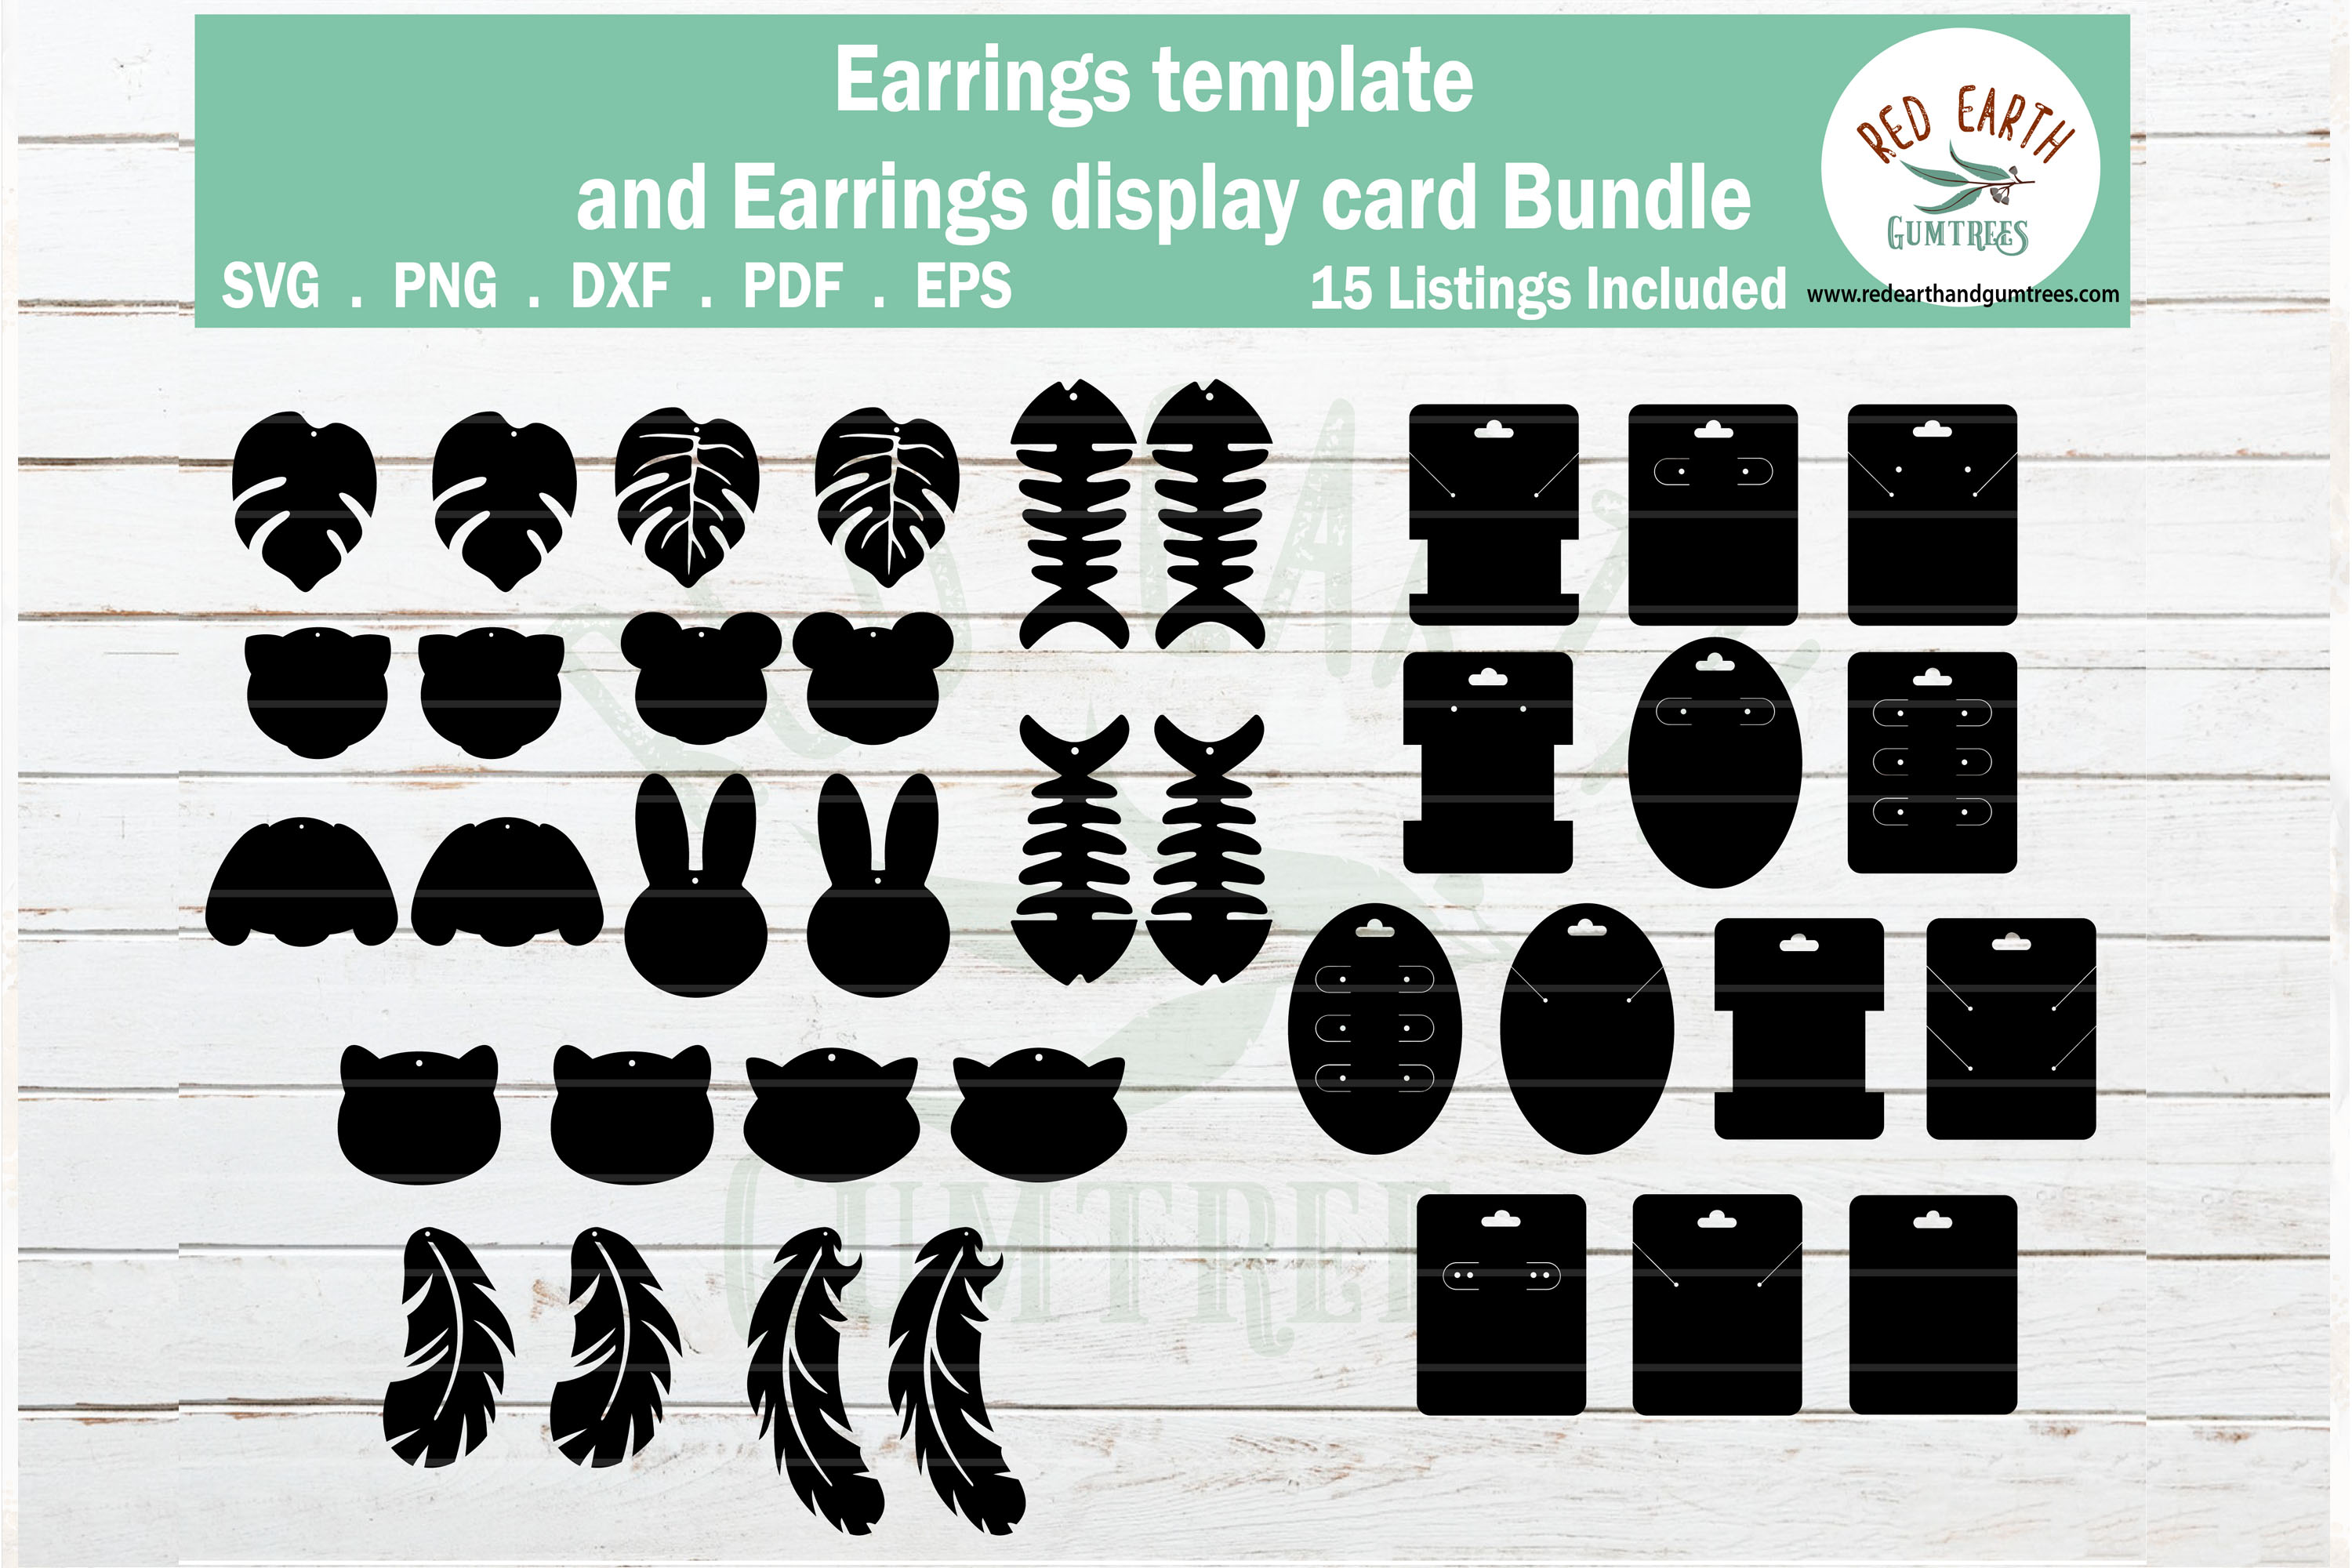 Download Free Animals Faux Earring Svg Earring Display Graphic By Redearth And for Cricut Explore, Silhouette and other cutting machines.